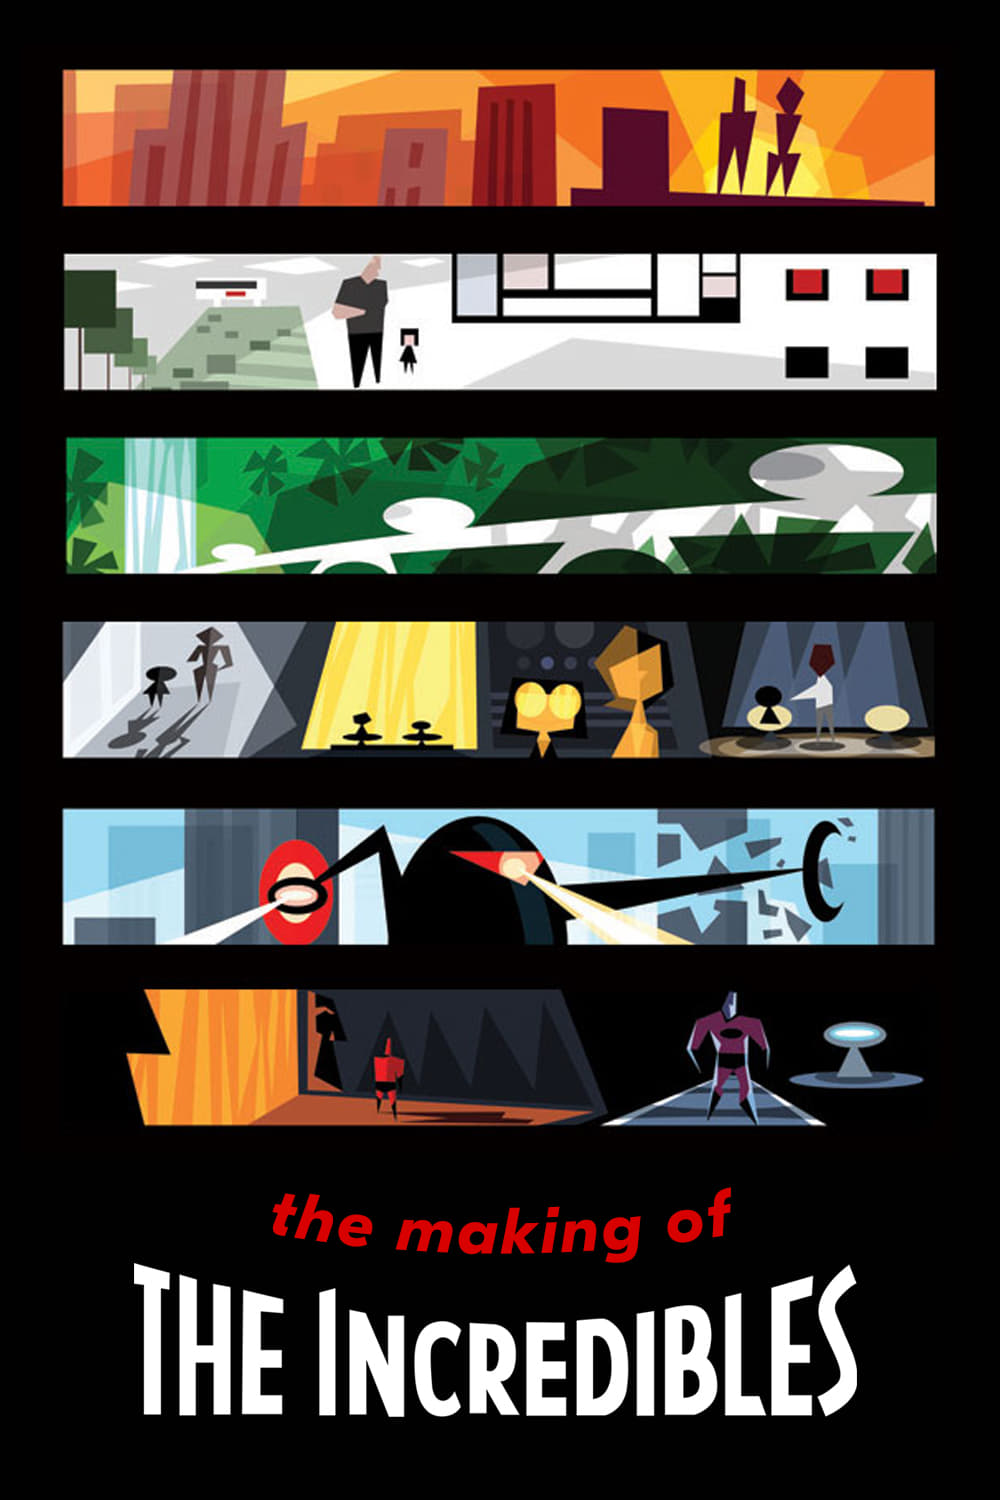 The Making of 'The Incredibles'